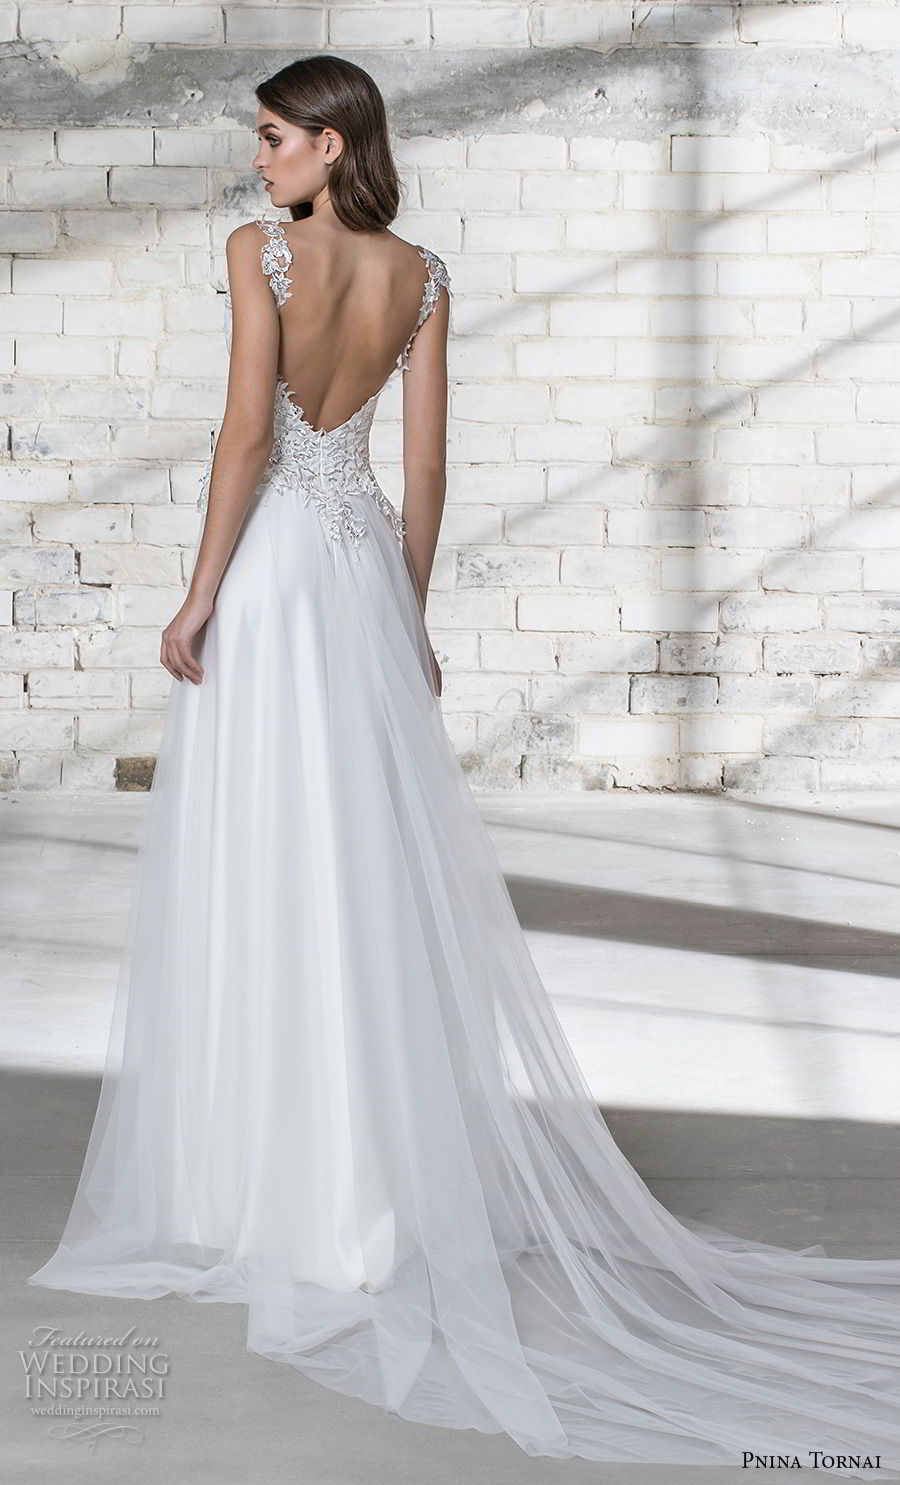 pnina tornai 2019 love bridal sleeveless thick strap deep plunging v neck heavily embellished bodice romantic modified a line wedding dress open back panel chapel train (7) bv